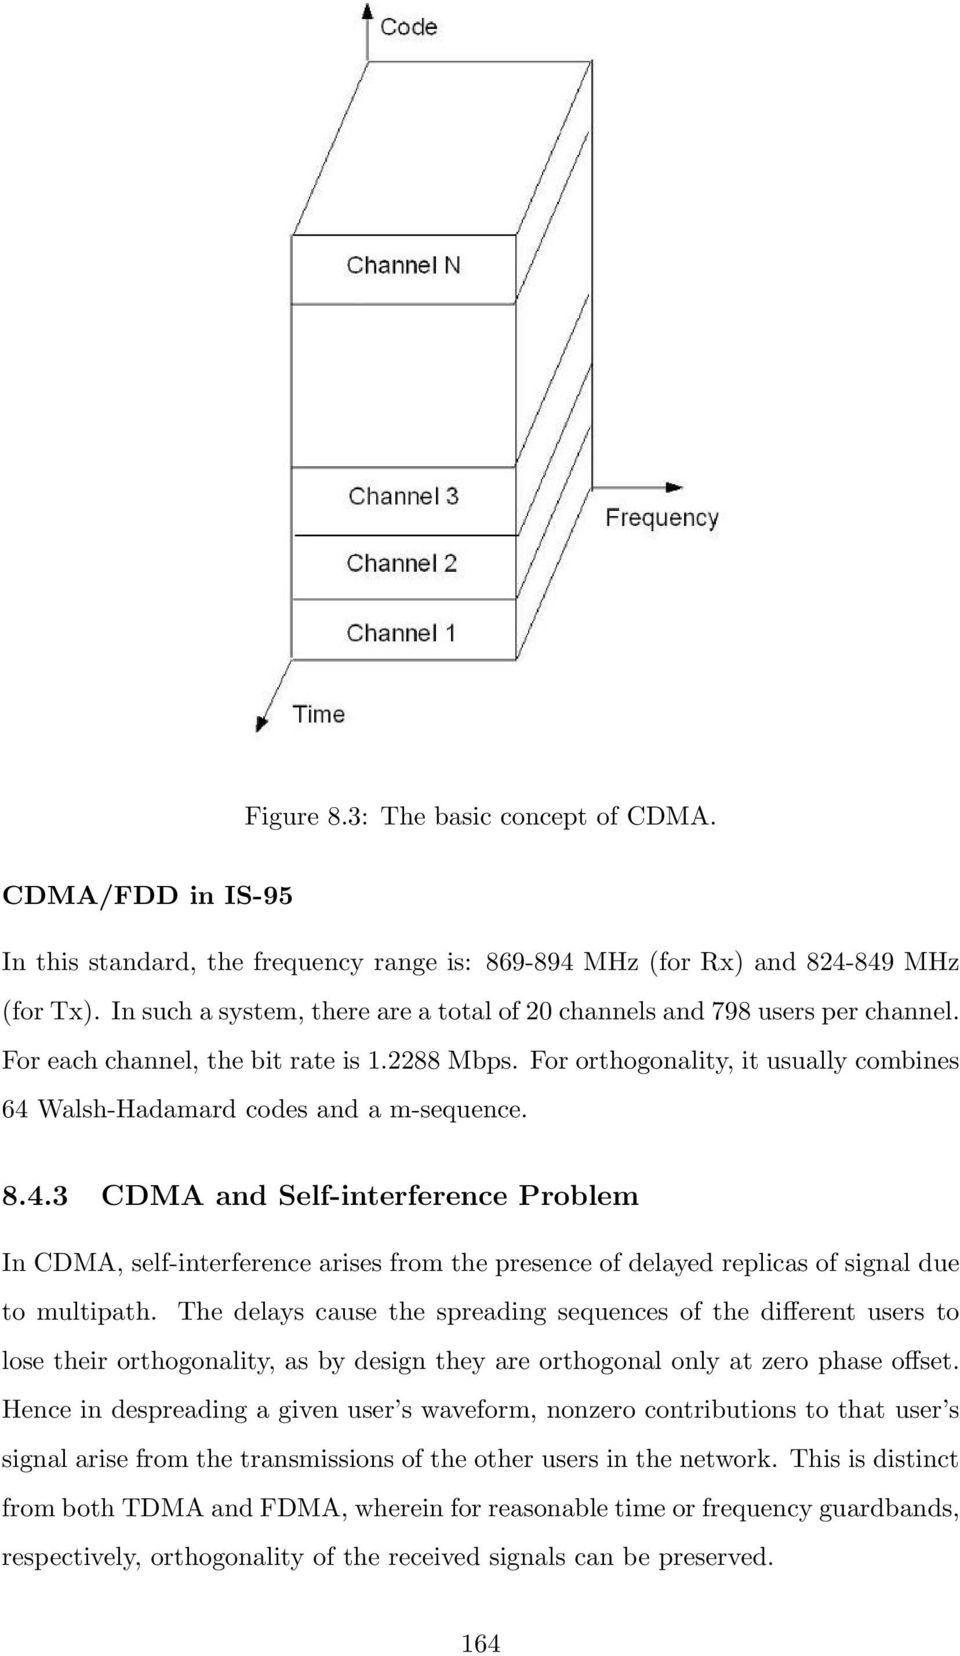 For orthogonality, it usually combines 64 Walsh-Hadamard codes and a m-sequence. 8.4.3 CDMA and Self-interference Problem In CDMA, self-interference arises from the presence of delayed replicas of signal due to multipath.